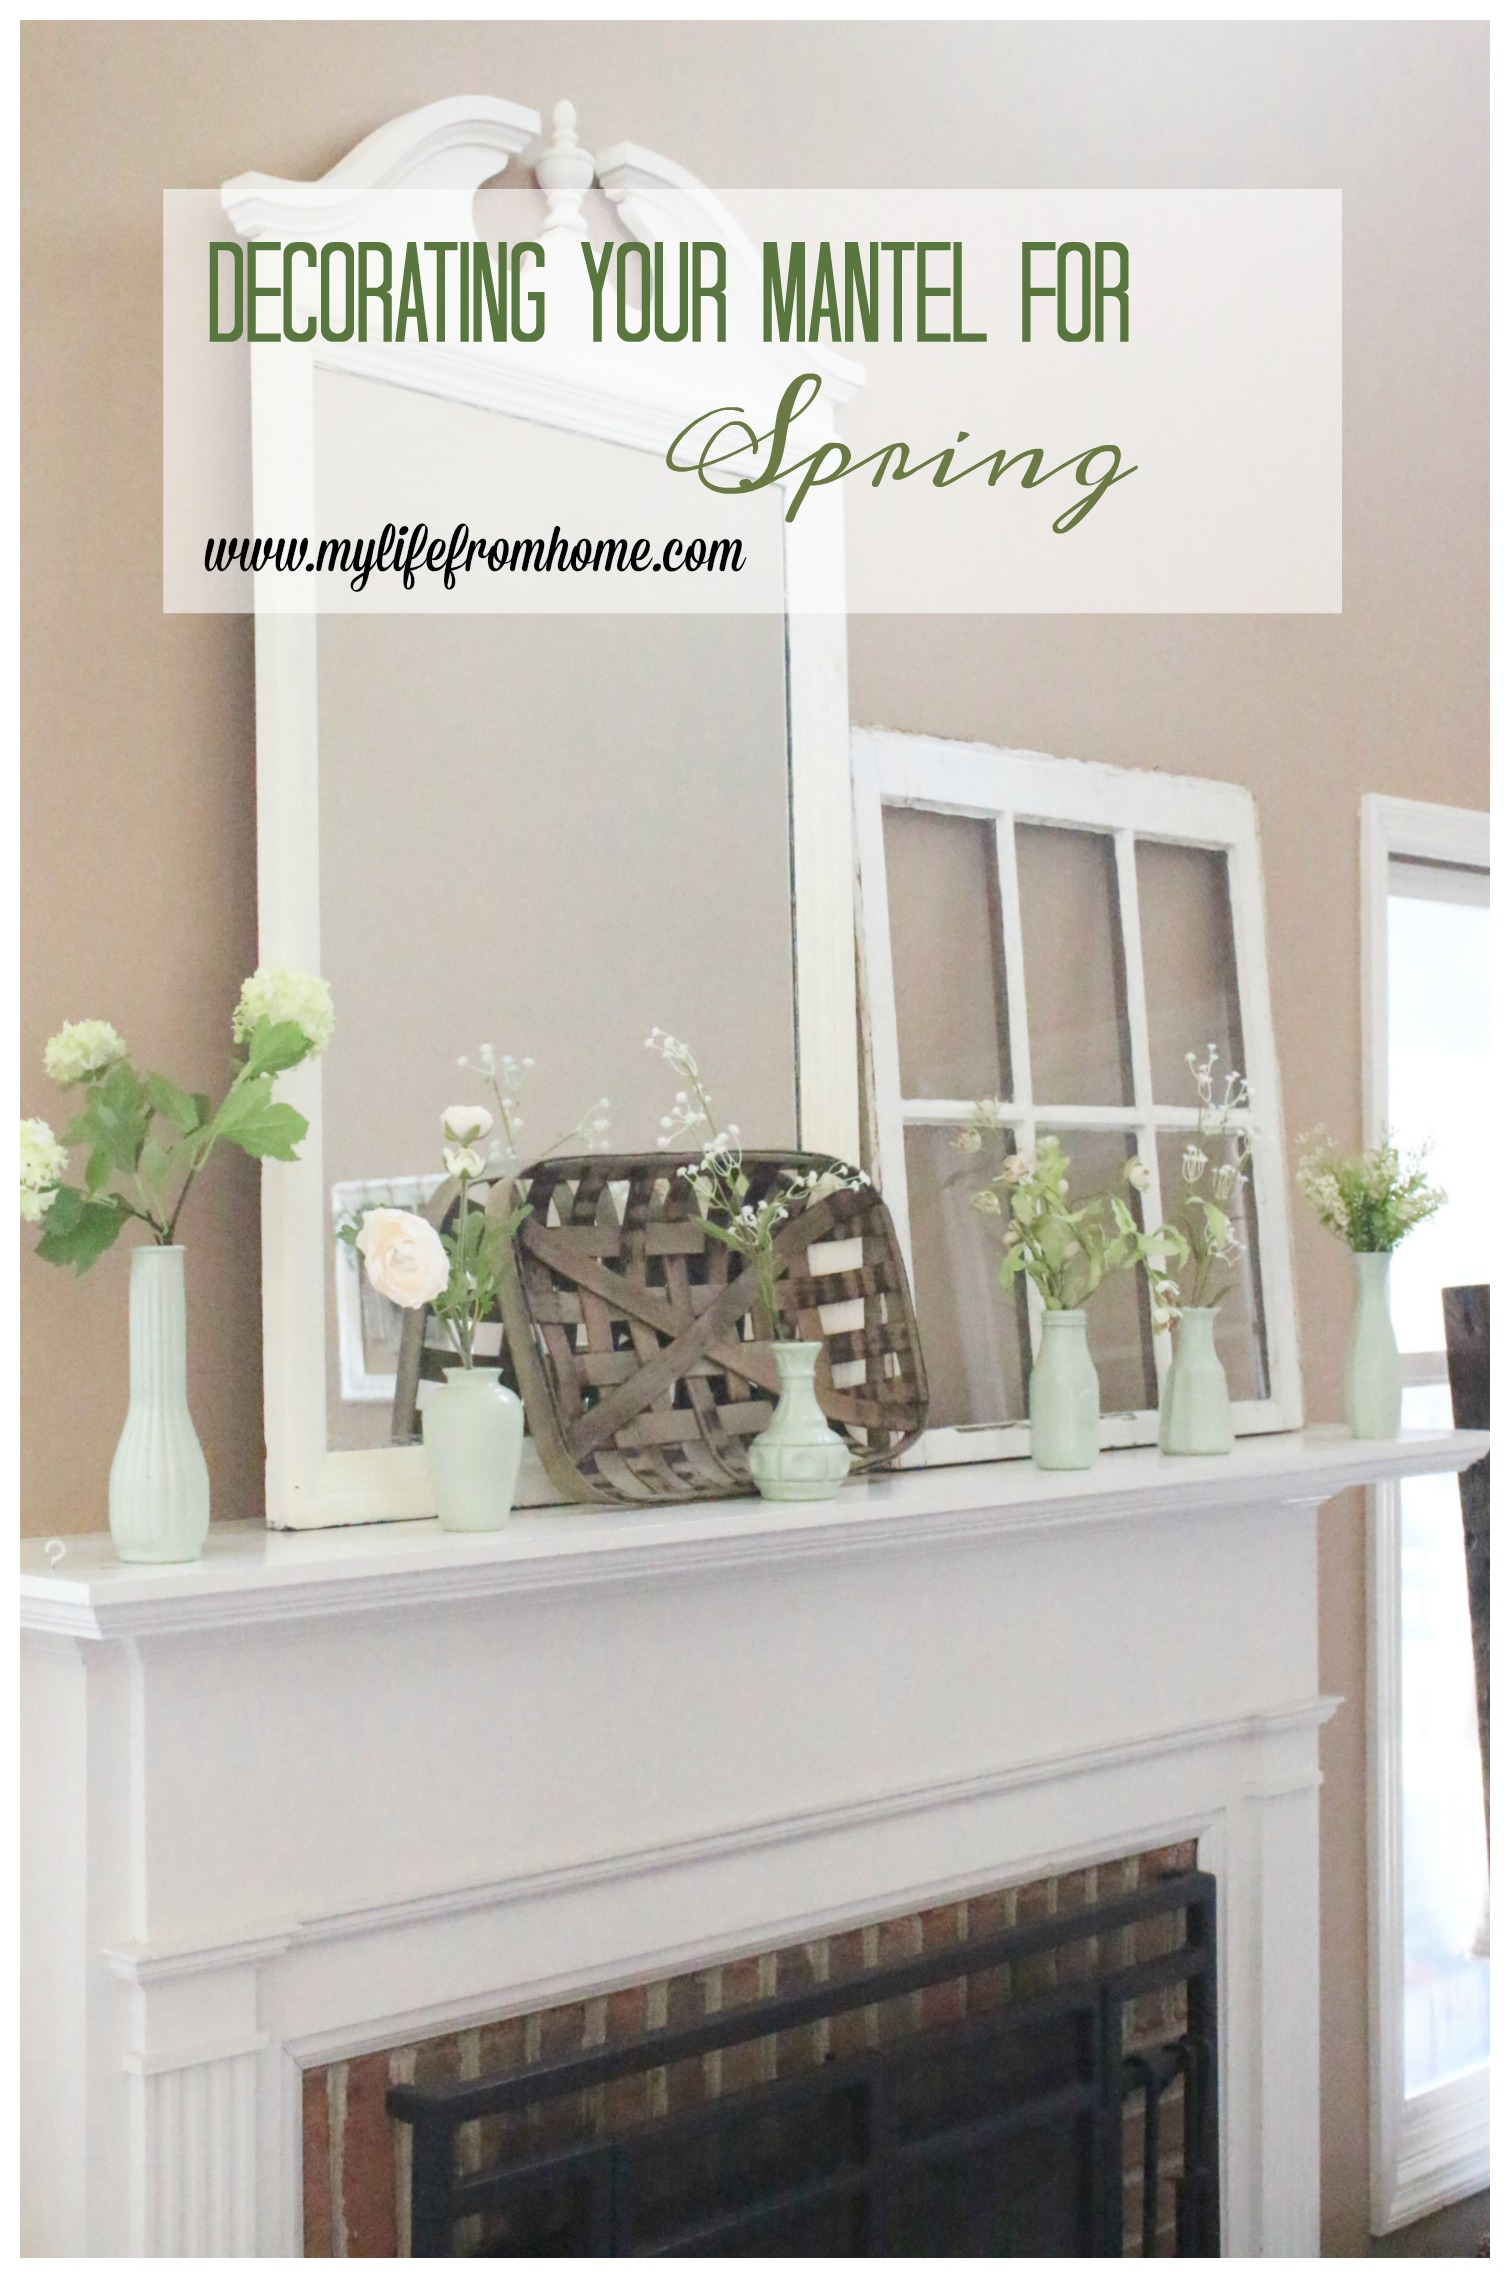 Decorate Your Mantel: Faux Milk Glass Mantel for Spring | My Life ...